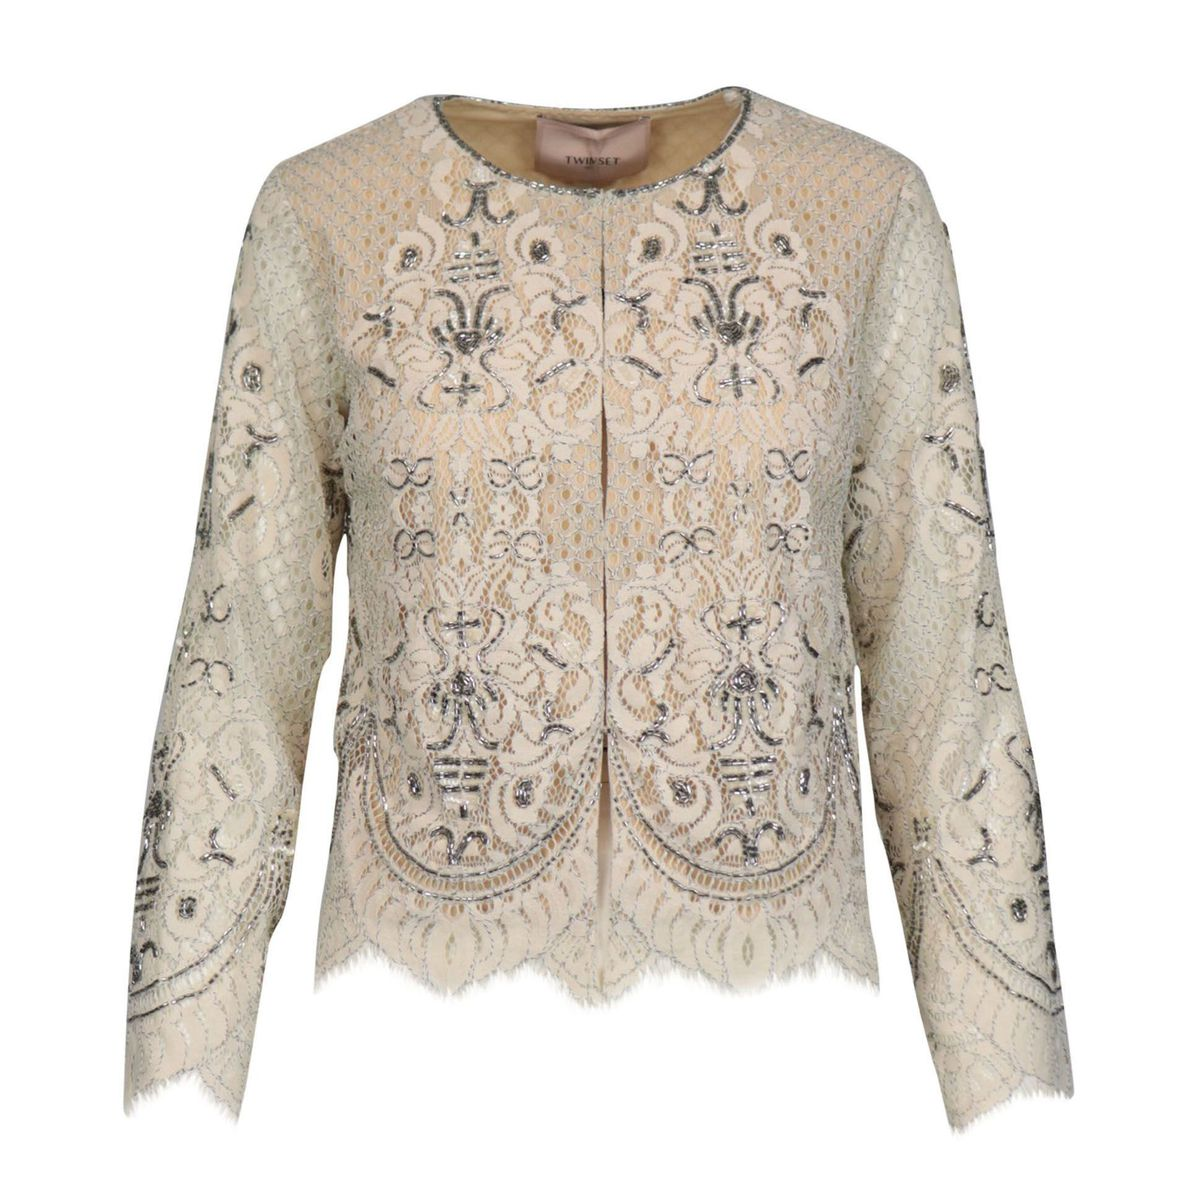 Korean jacket in rébrodé lace with embroidery Ivory Twin-Set